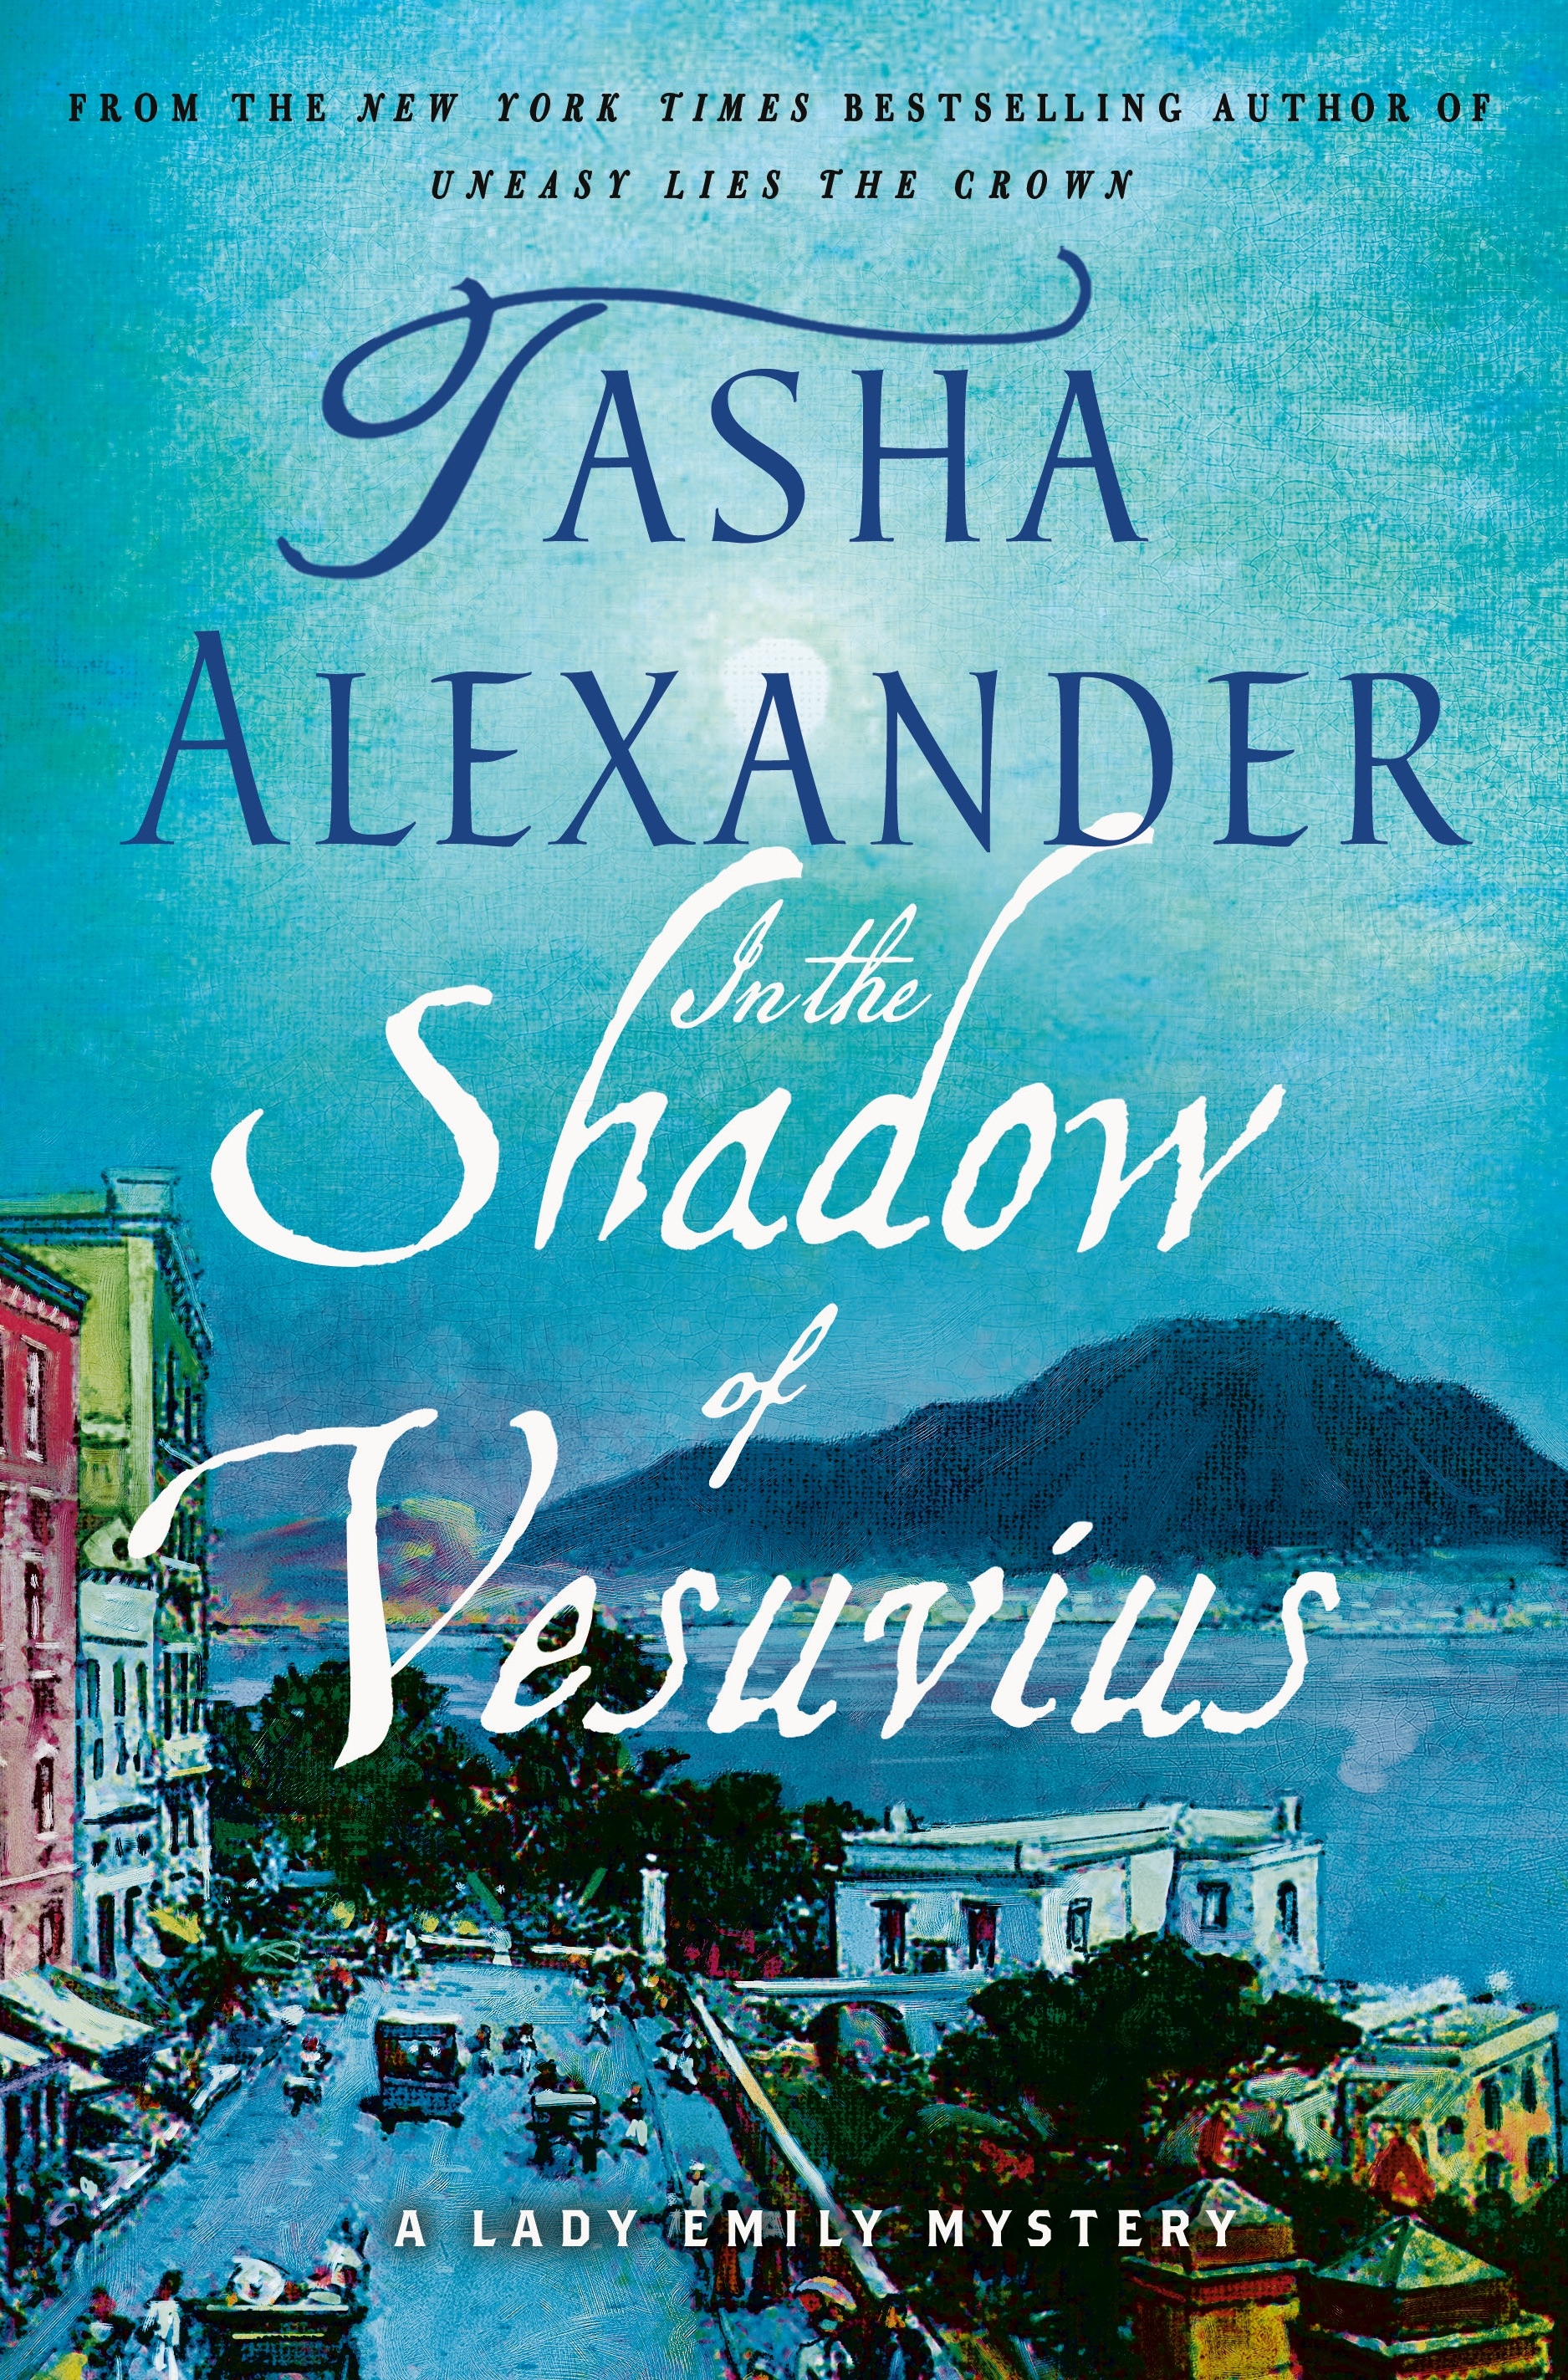 In the shadow of Vesuvius cover image